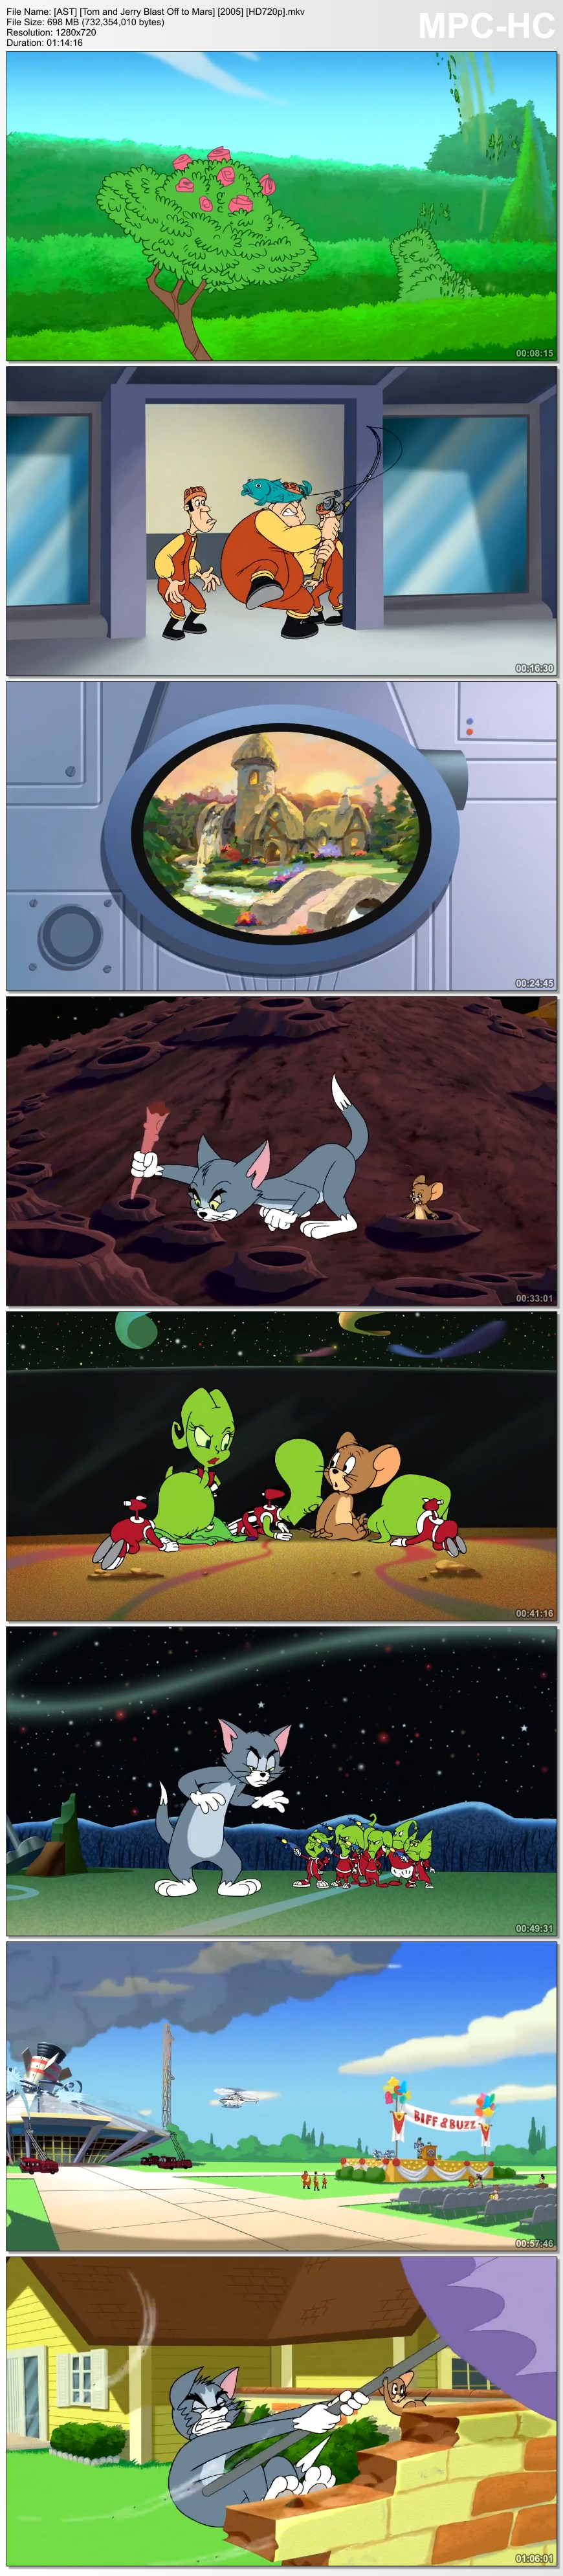 tom and jerry blast off to mars trailer - photo #30